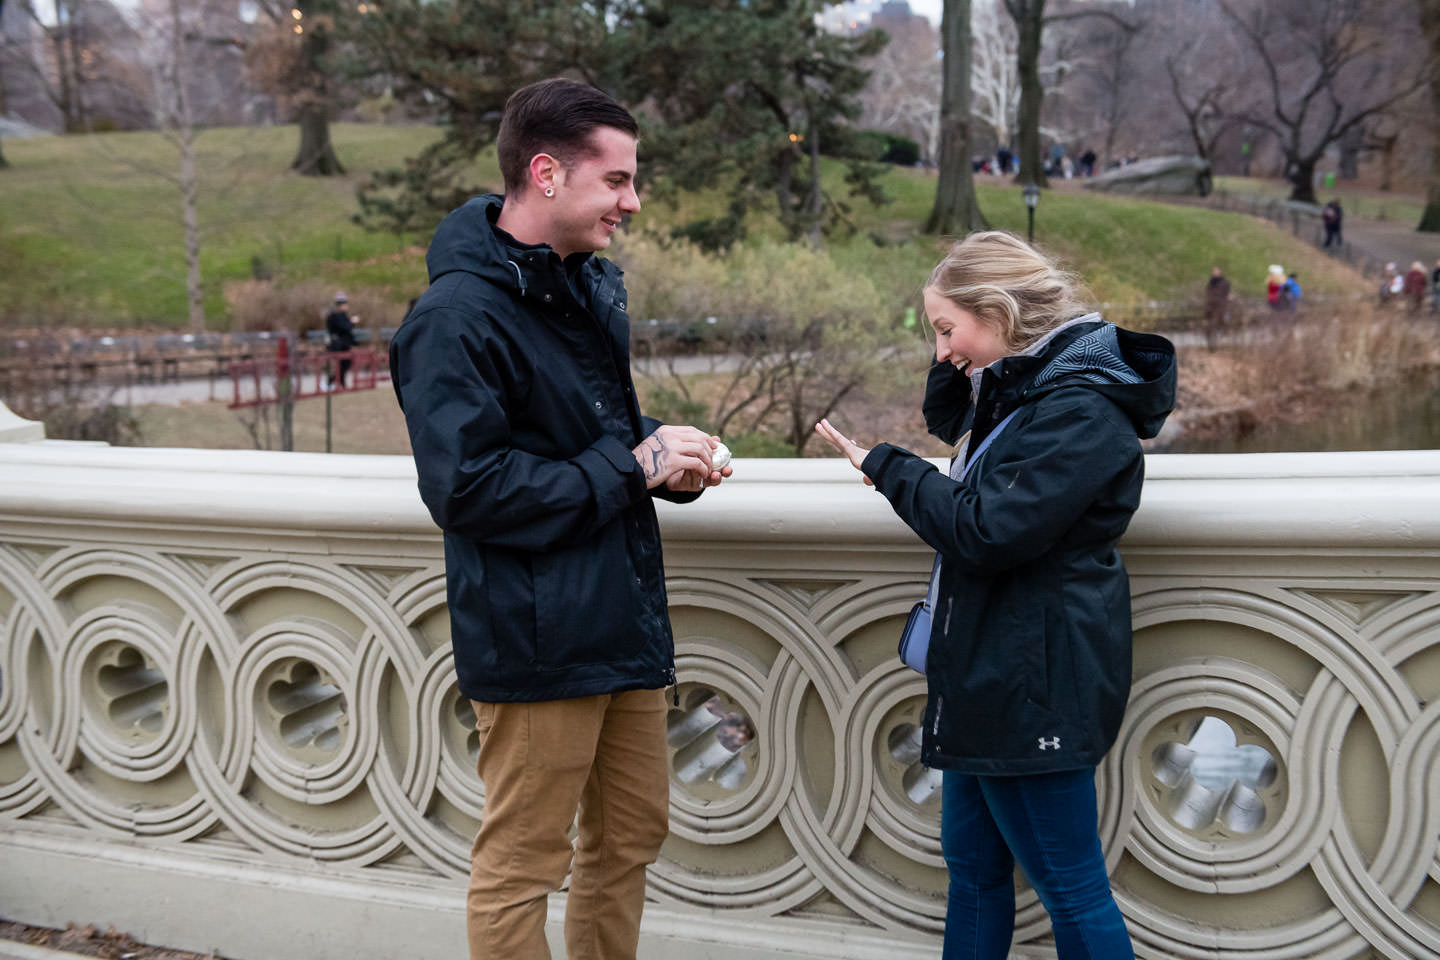 girl is amazed at engagement ring after proposal on bow bridge in central park nyc